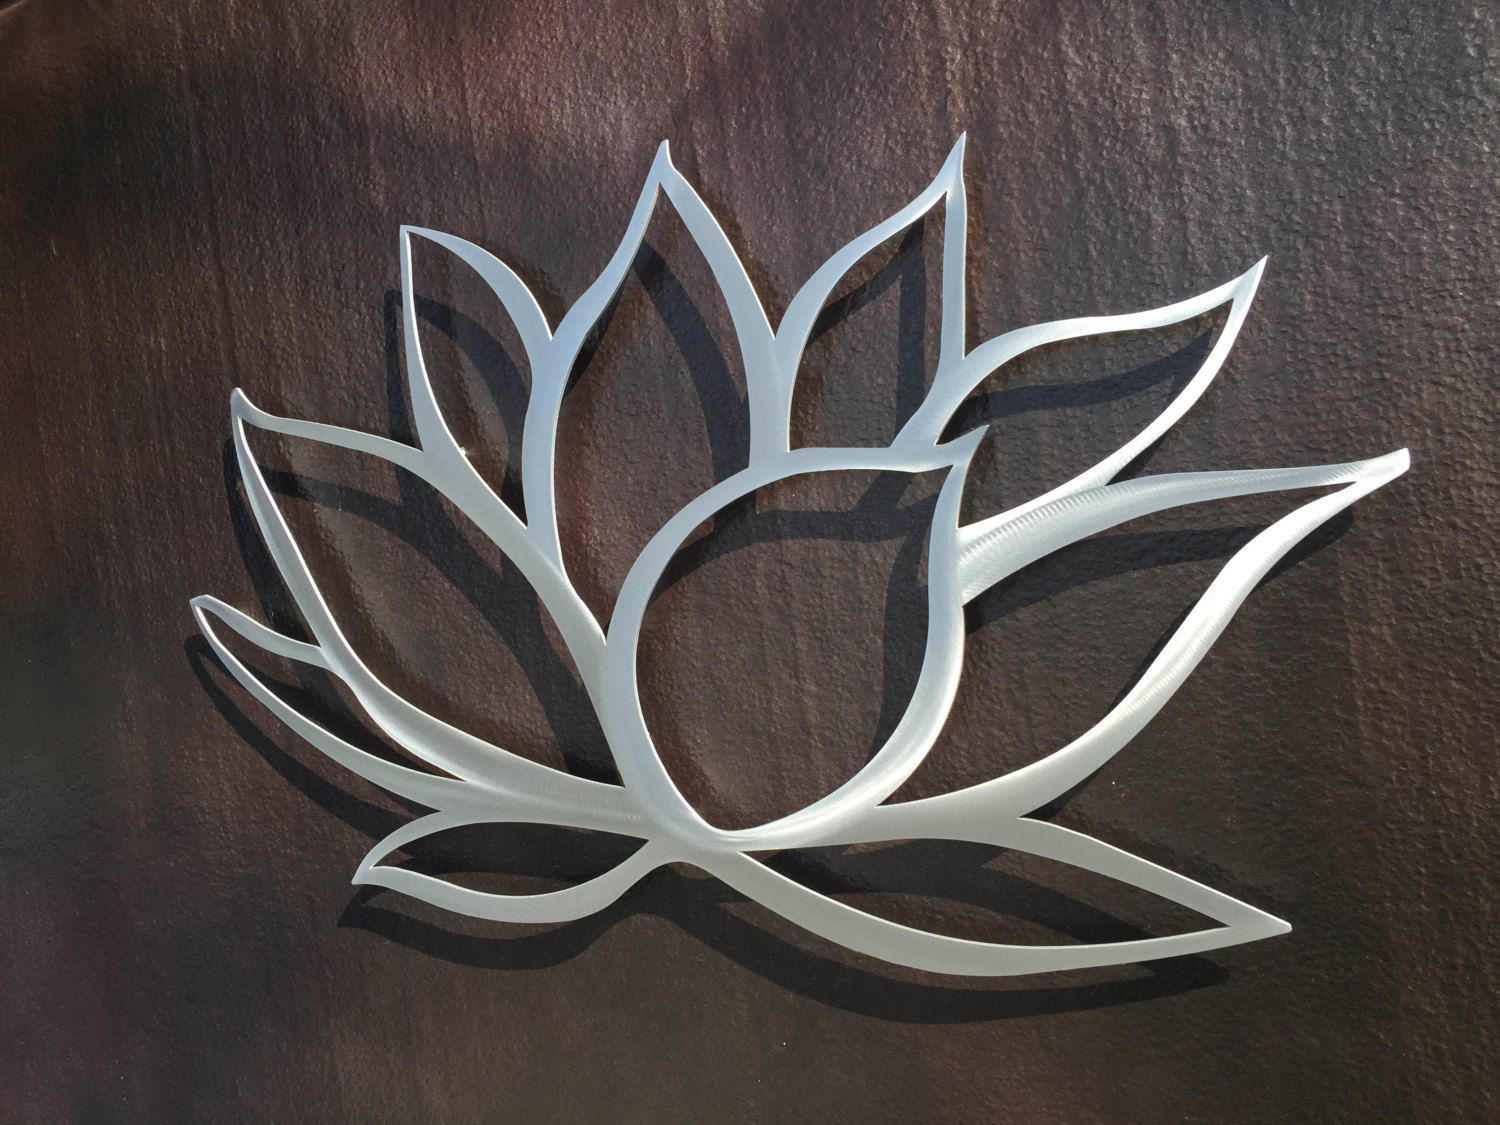 Large Metal Leaf Wall Decor Classy Lotus Flower Metal Wall Art  Lotus Metal Art  Home Decor In 2018